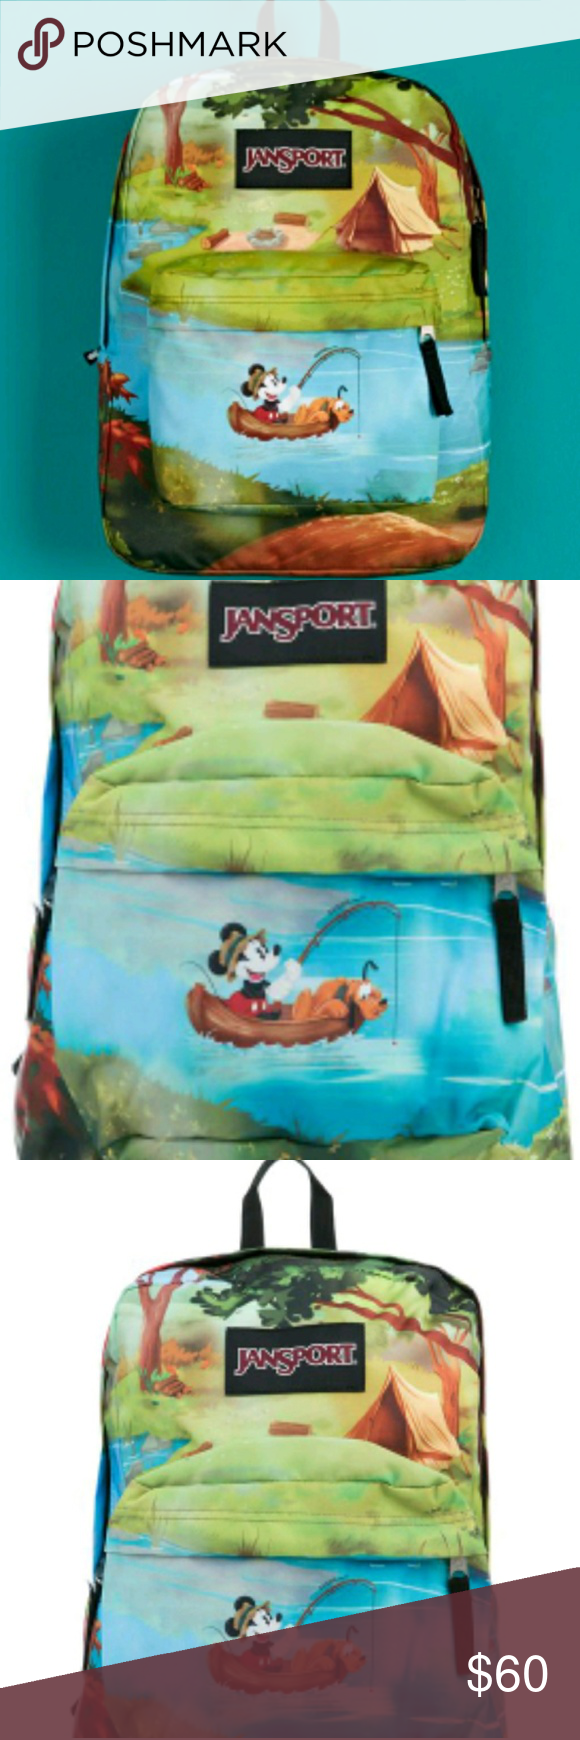 9a5c368e5bf 🆕Disney jansport backpack Brand new with tag and just in time for back to  school. Disney jansport backpack. Featuring Mickey and Pluto fishing on a  lake ...